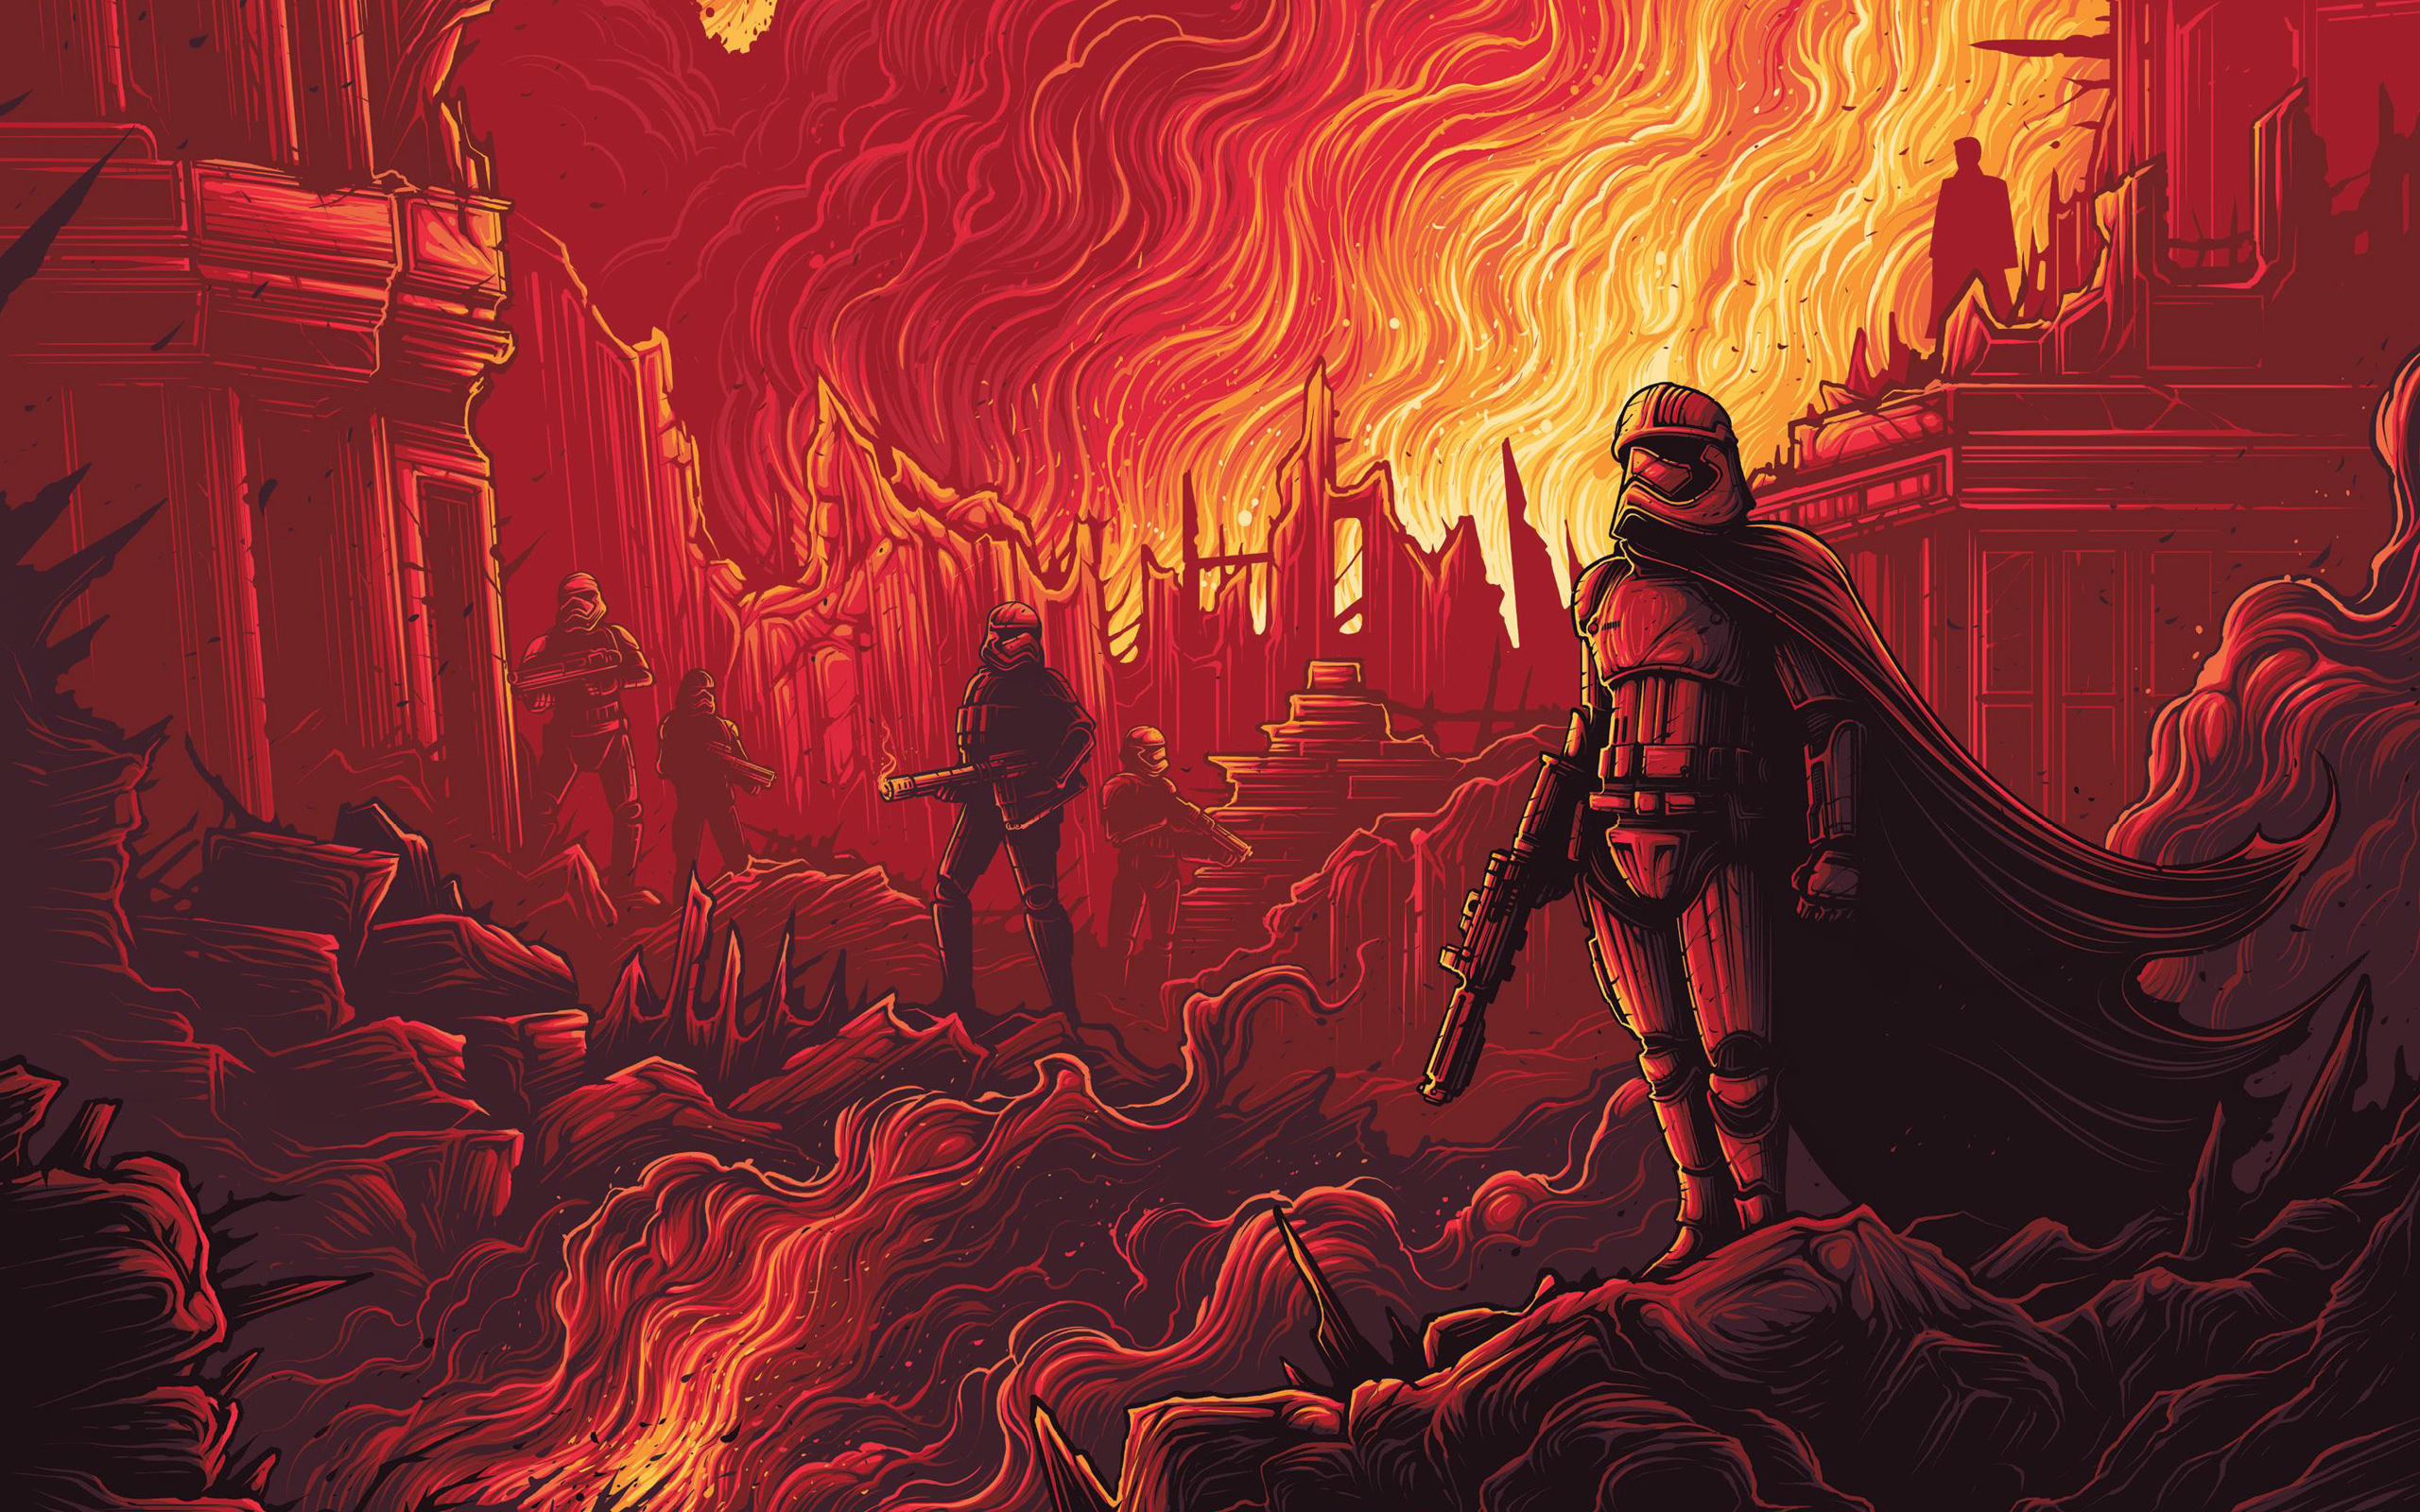 Star Wars Episode Vii The Force Awakens Hd Wallpaper Background Image 2560x1600 Id 676619 Wallpaper Abyss